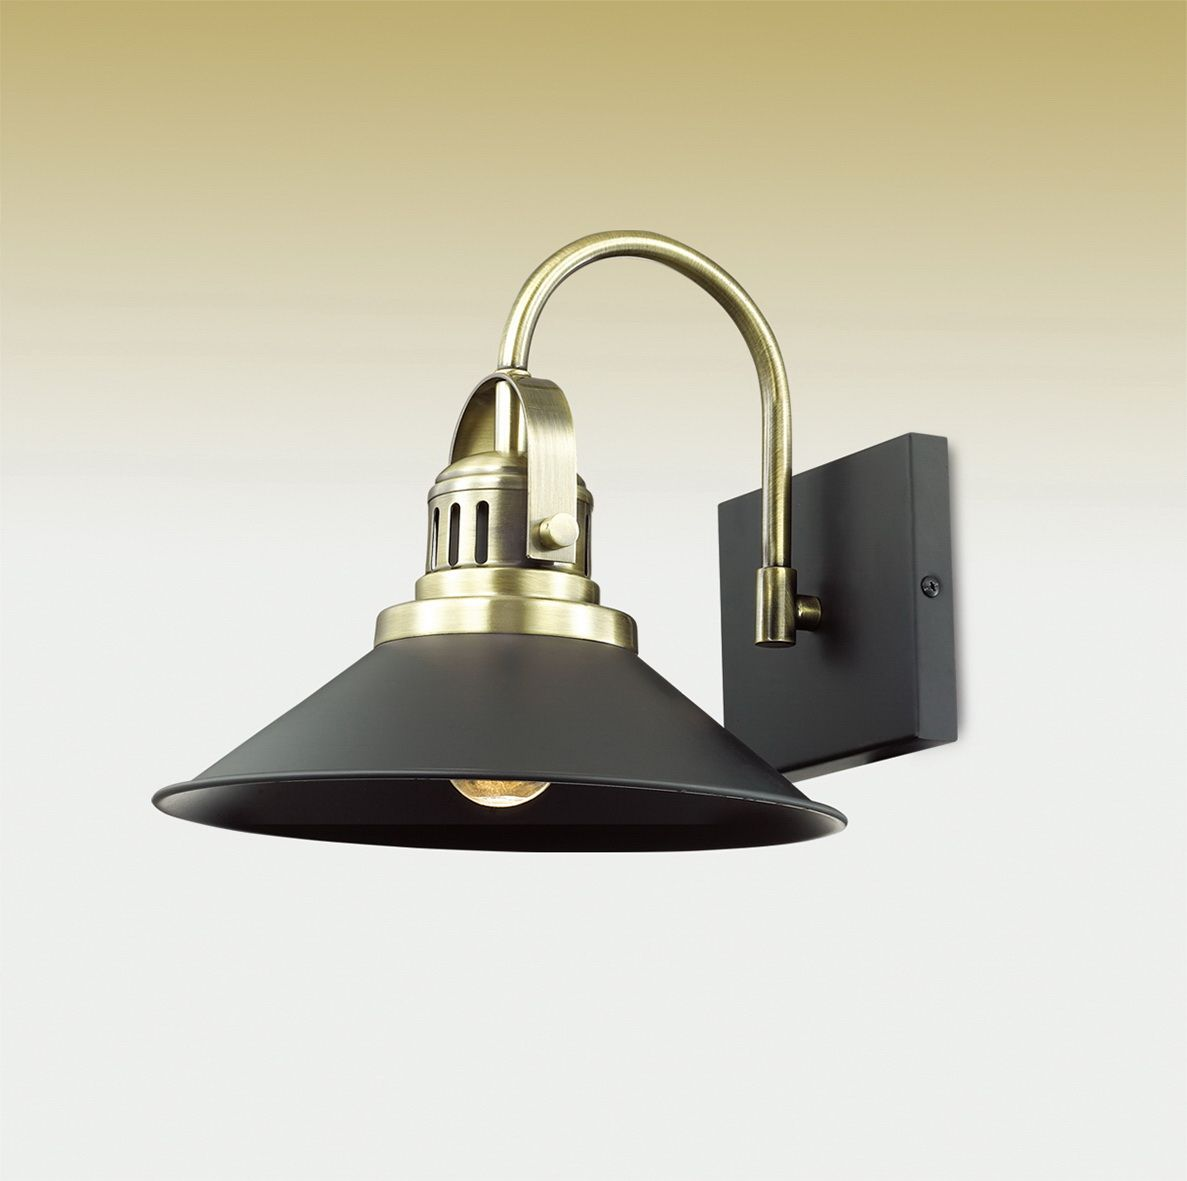 Бра Odeon Light Latura, 1 х E27, 60W. 2898/1W